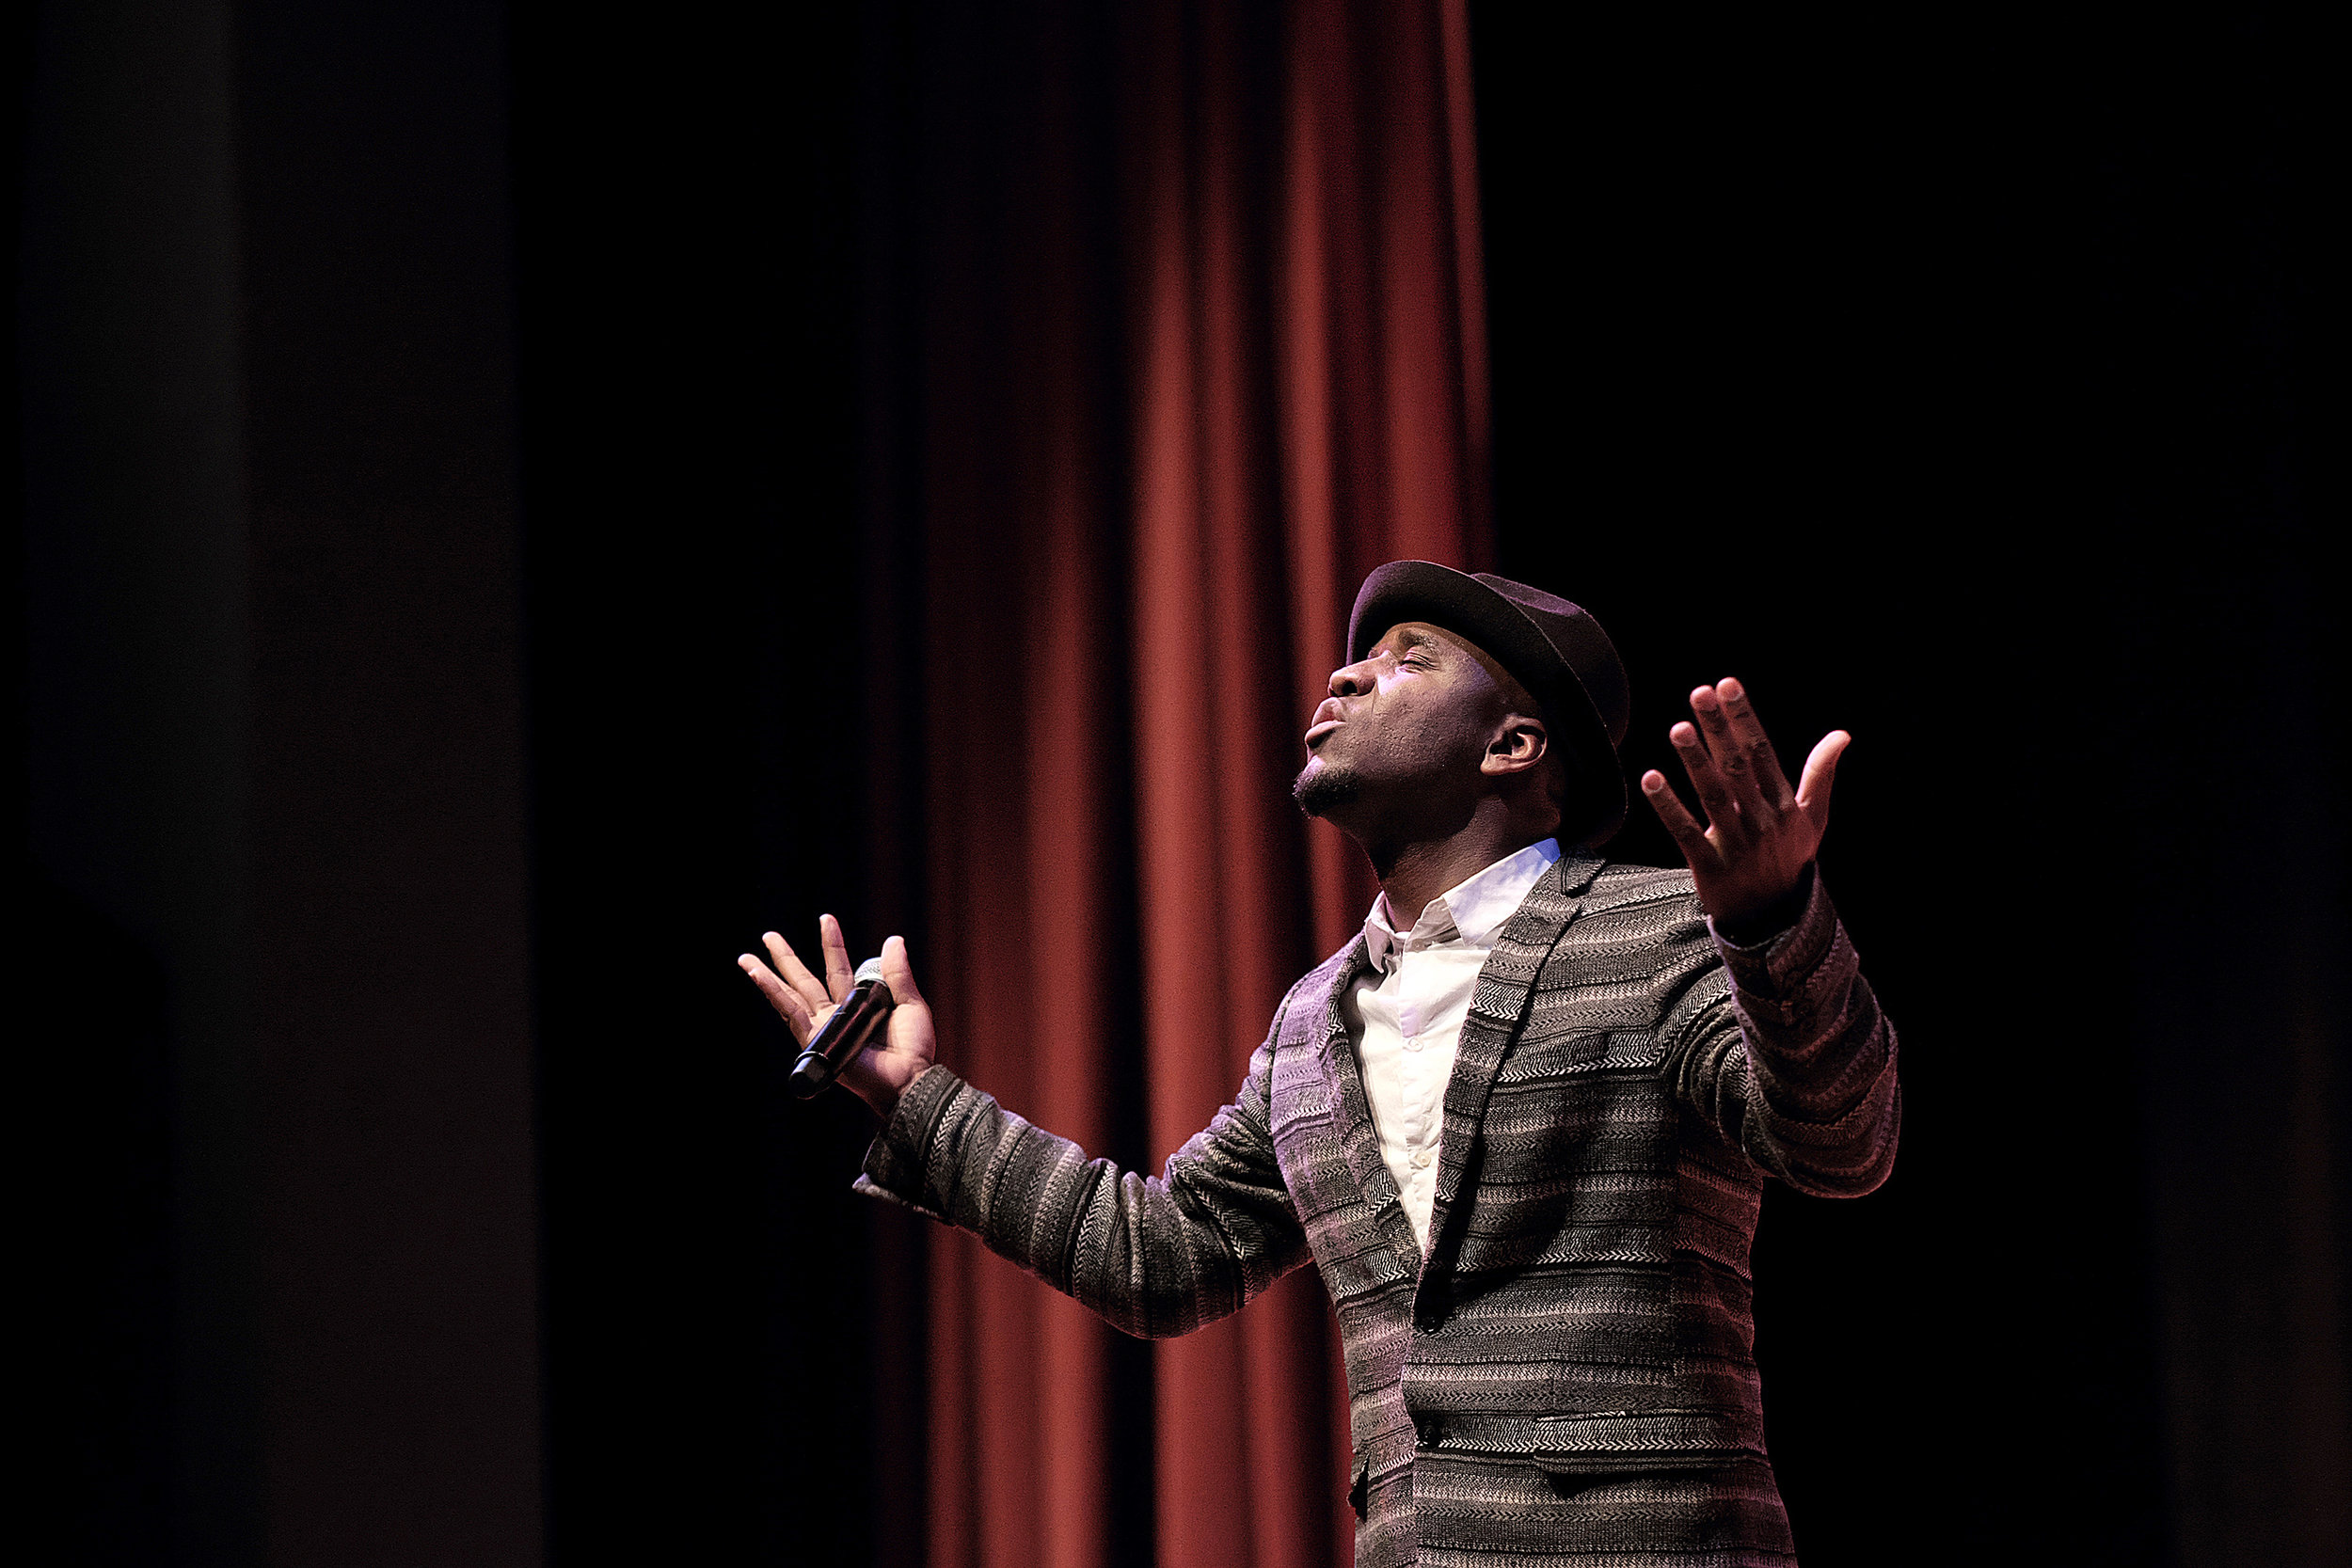 Niles performs at a Dr. Martin Luther King Jr. tribute event that he produced at the University of Minnesota on January 18.